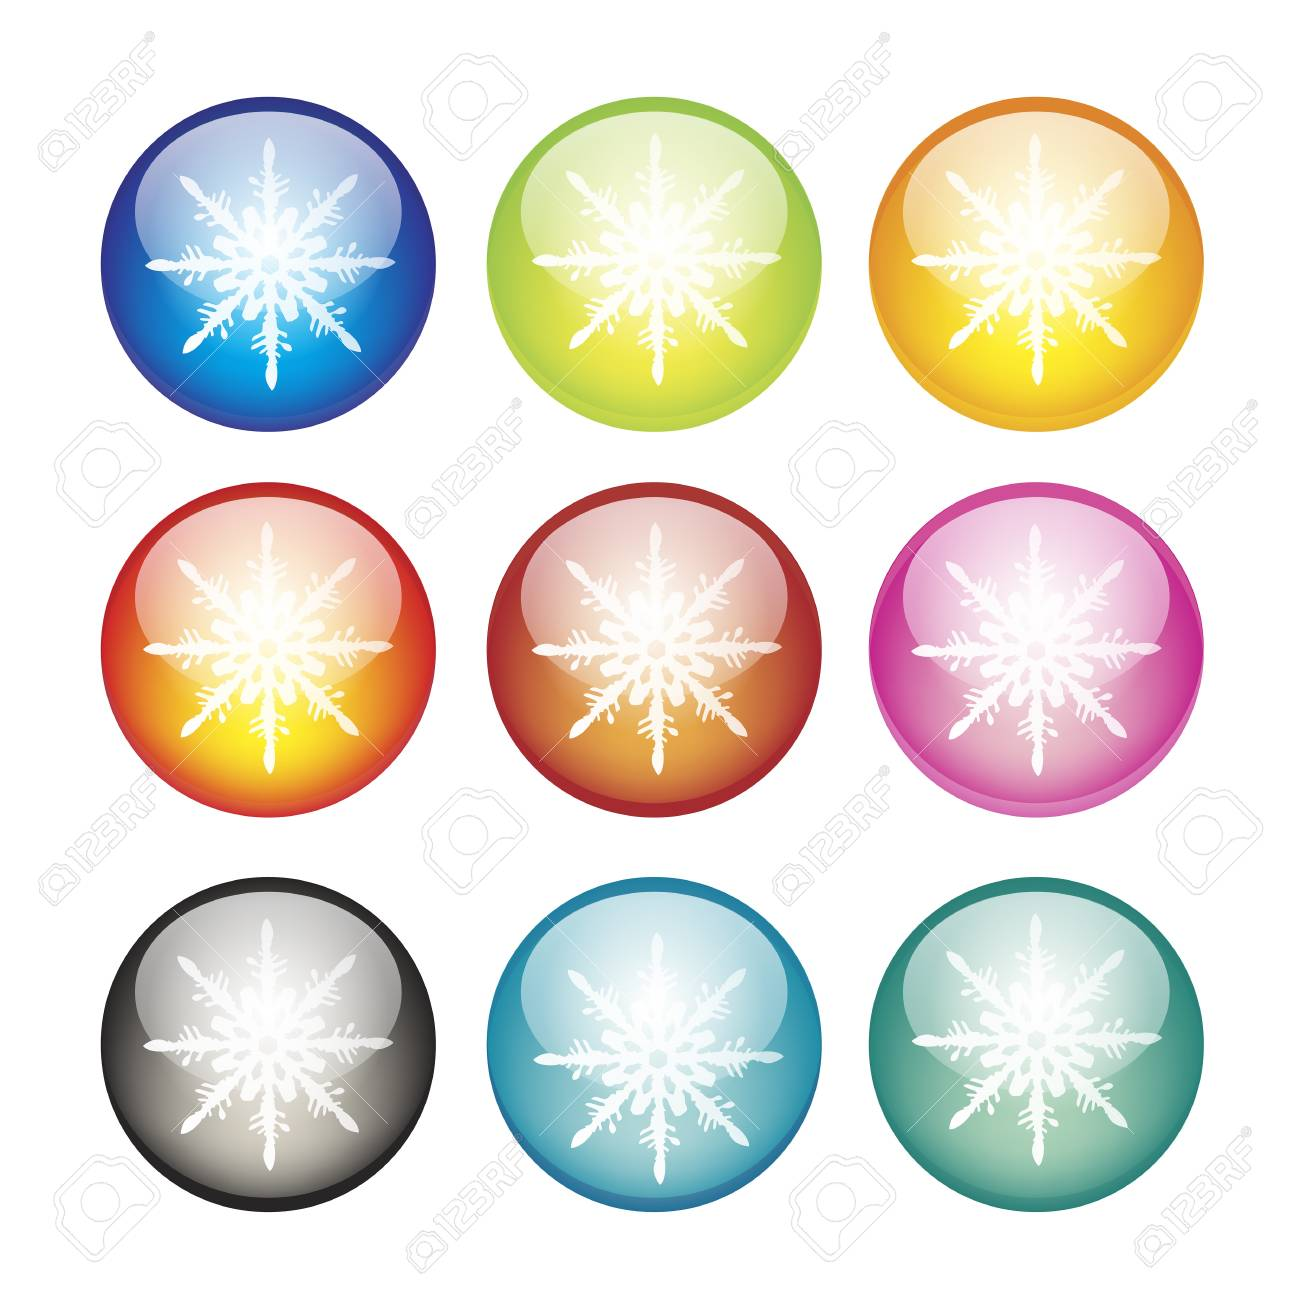 Snowflake icons on spherical background   illustration Stock Vector - 16111276